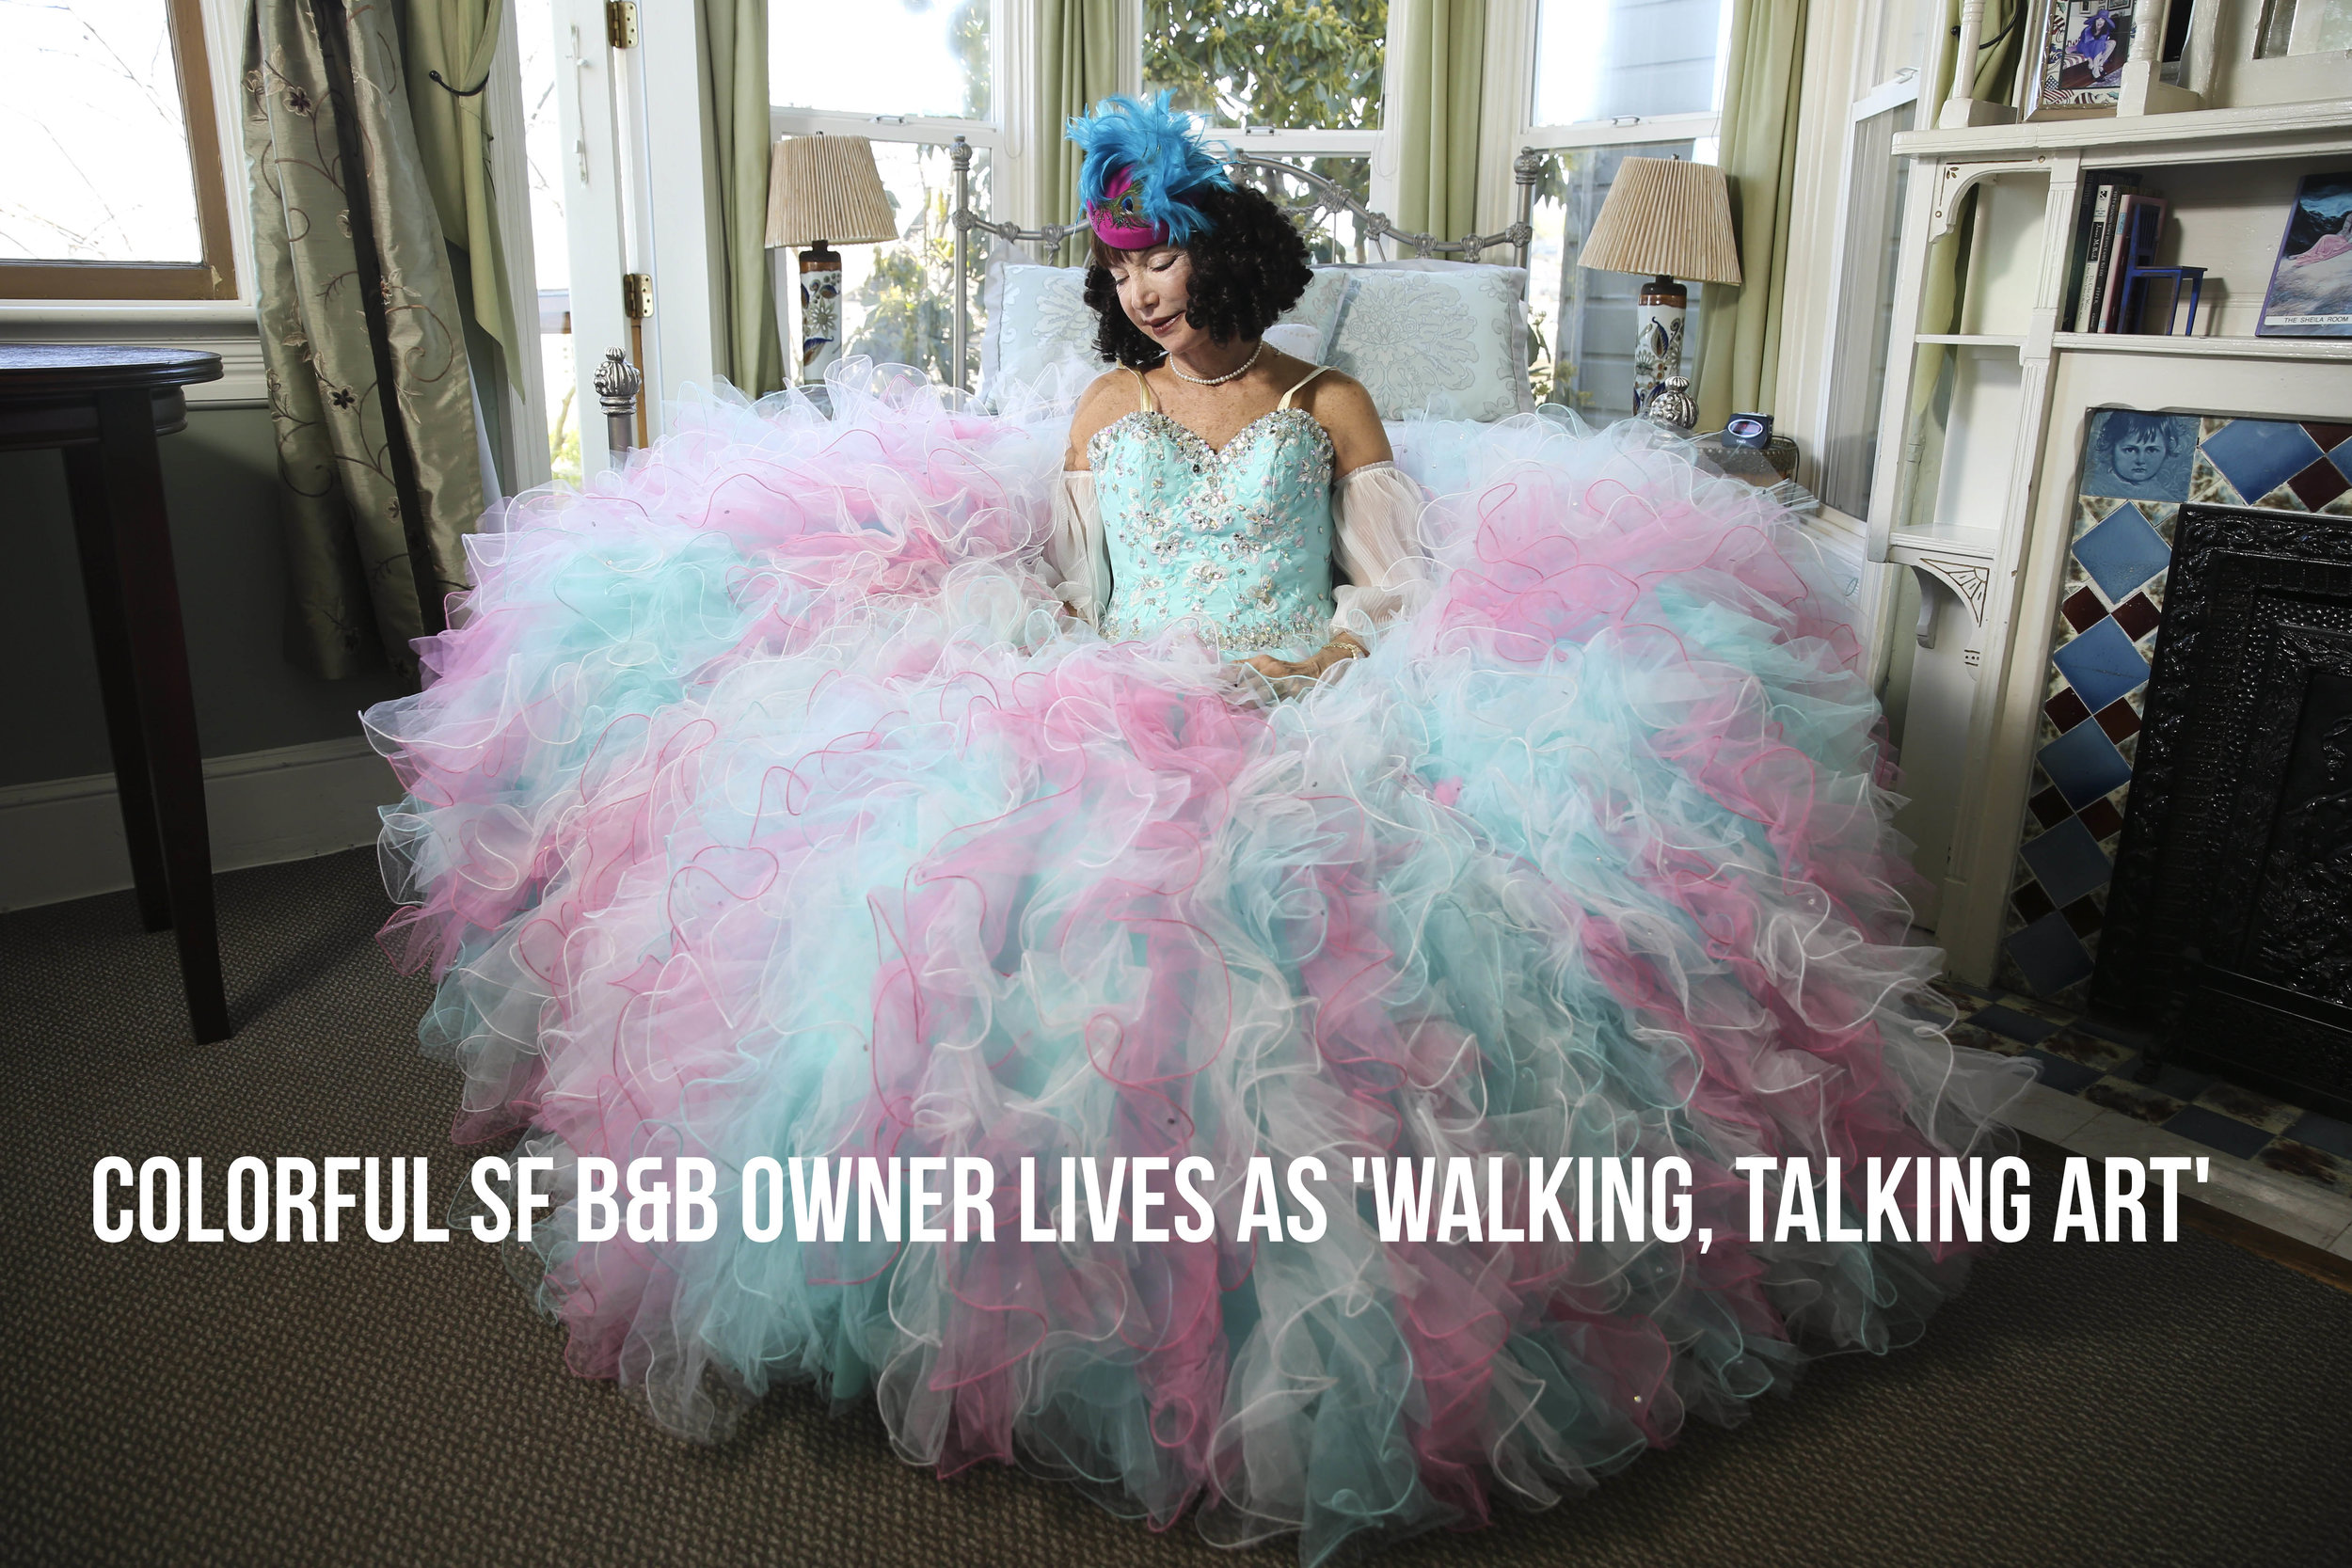 Colorful SF B&B owner lives as 'walking, talking art': Shelia Ash | SF Chronicle